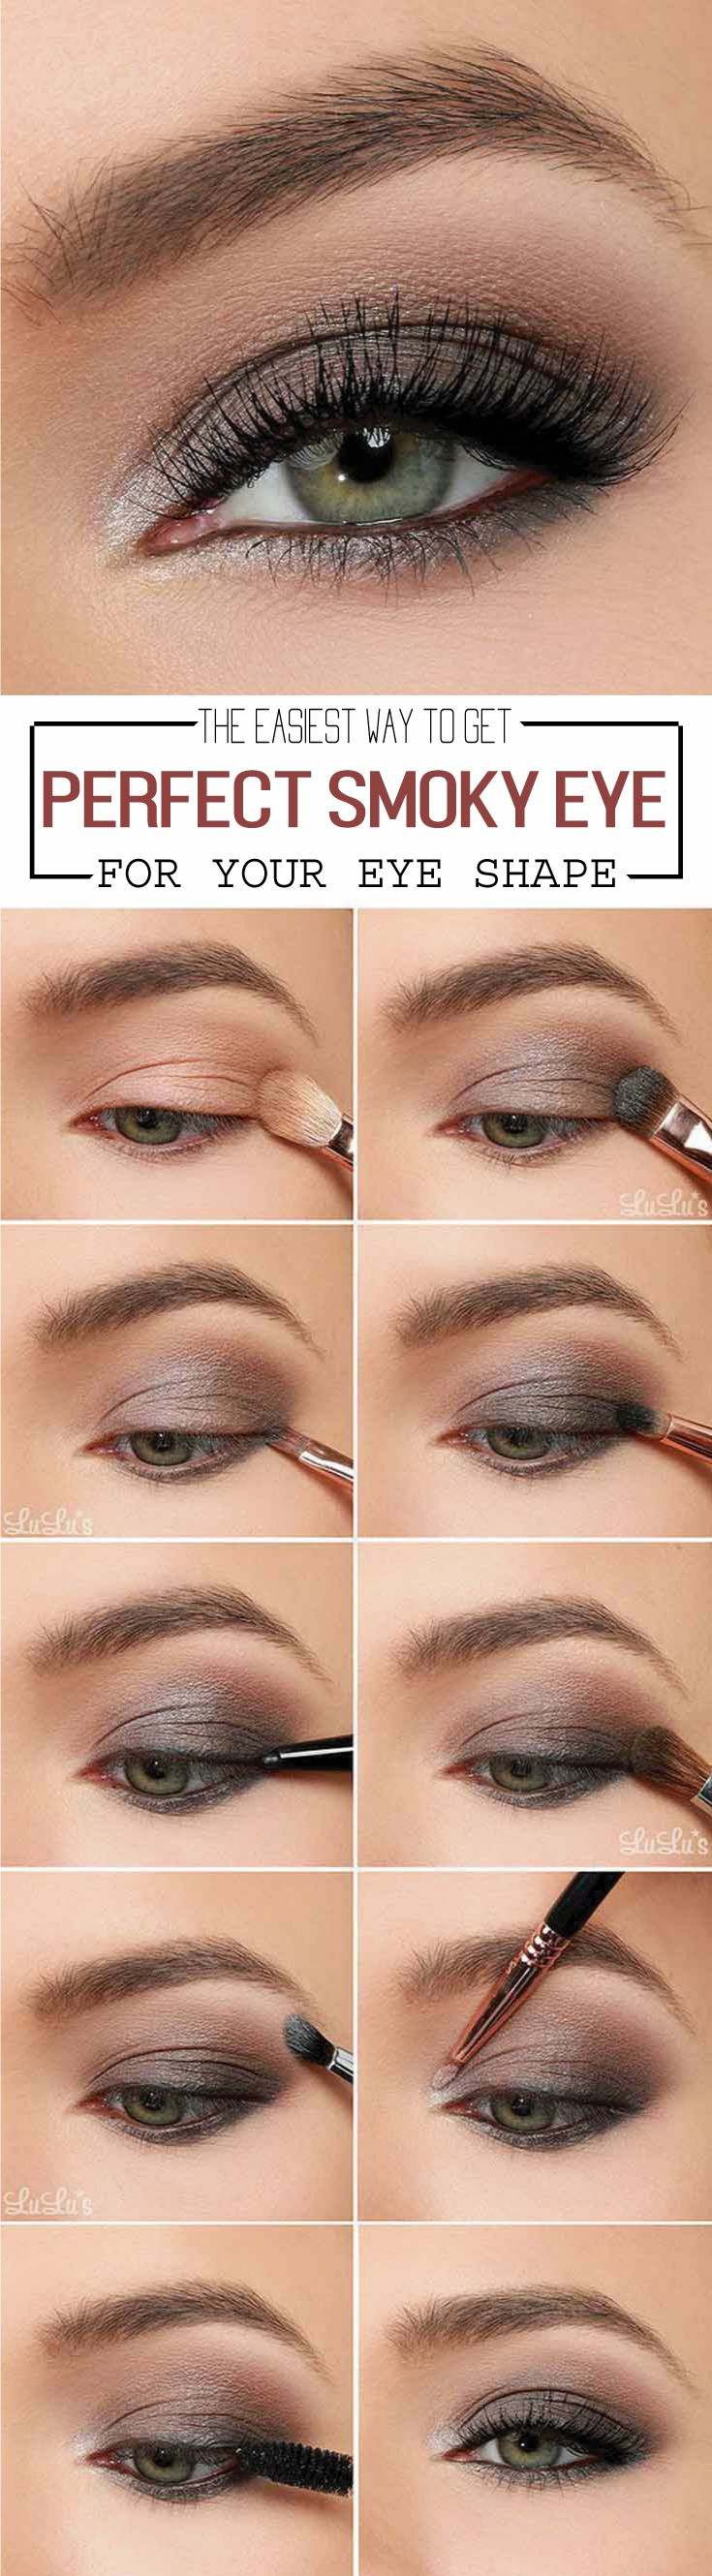 Smokey eyes sometimes look easily brushed on but they are not always the  simplest looks to execute. How high are you supposed to blend the shadow? How  many shades should you use to get a notice-me dimension? What colors will  perfectly accentuate in your eyes? There are some tricks from makeup artist,  click to find out more.